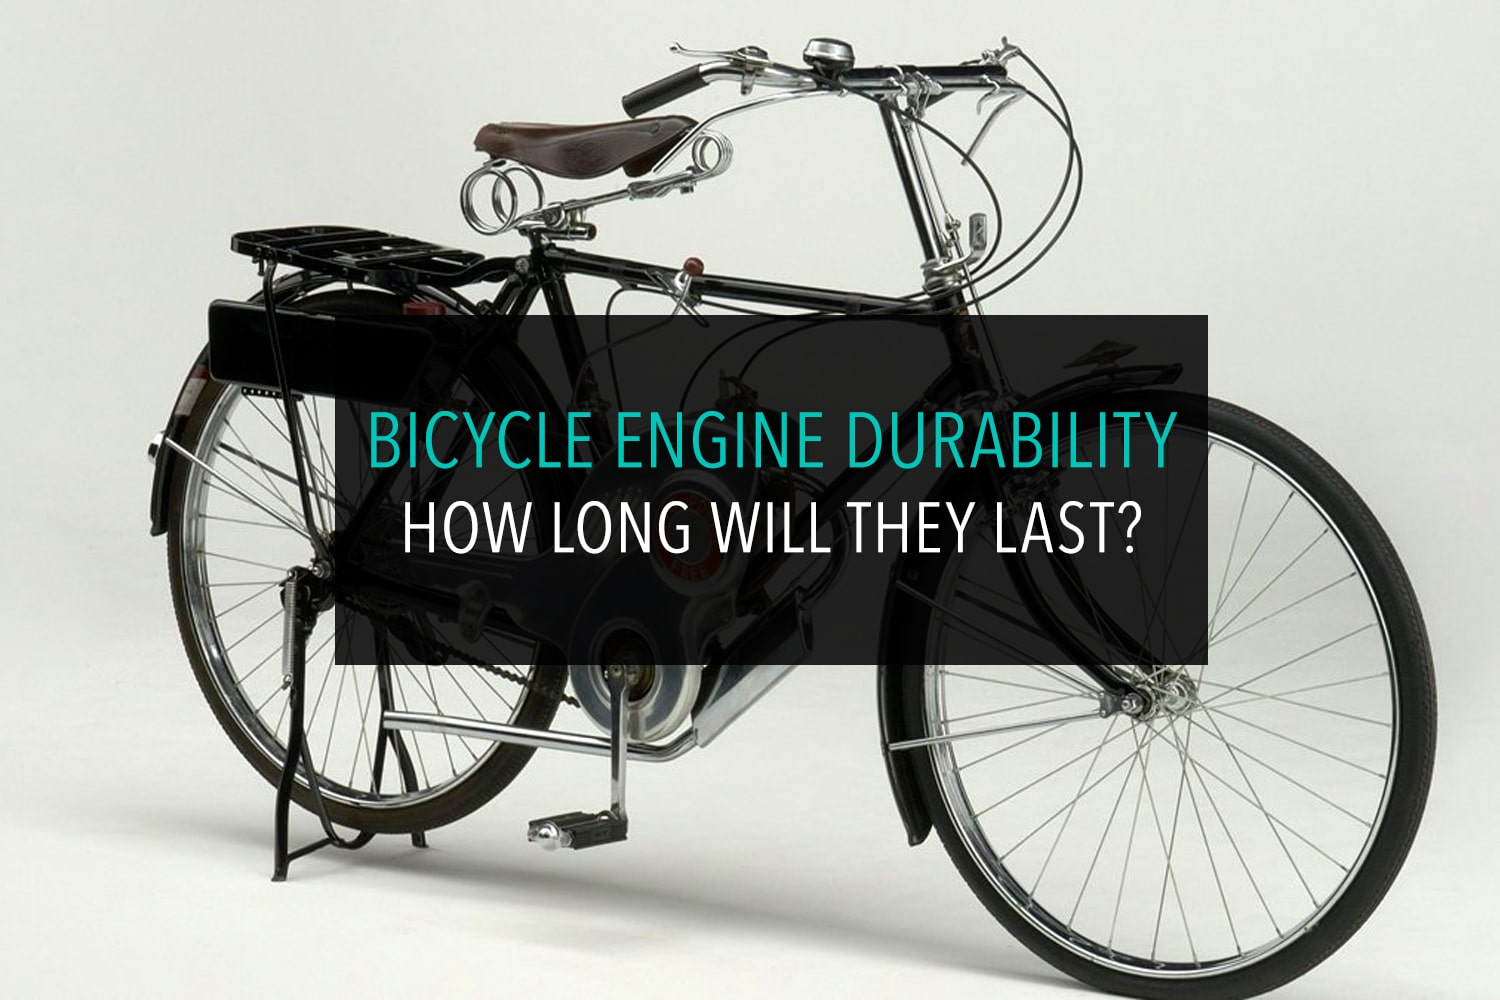 Bicycle Engine Durability